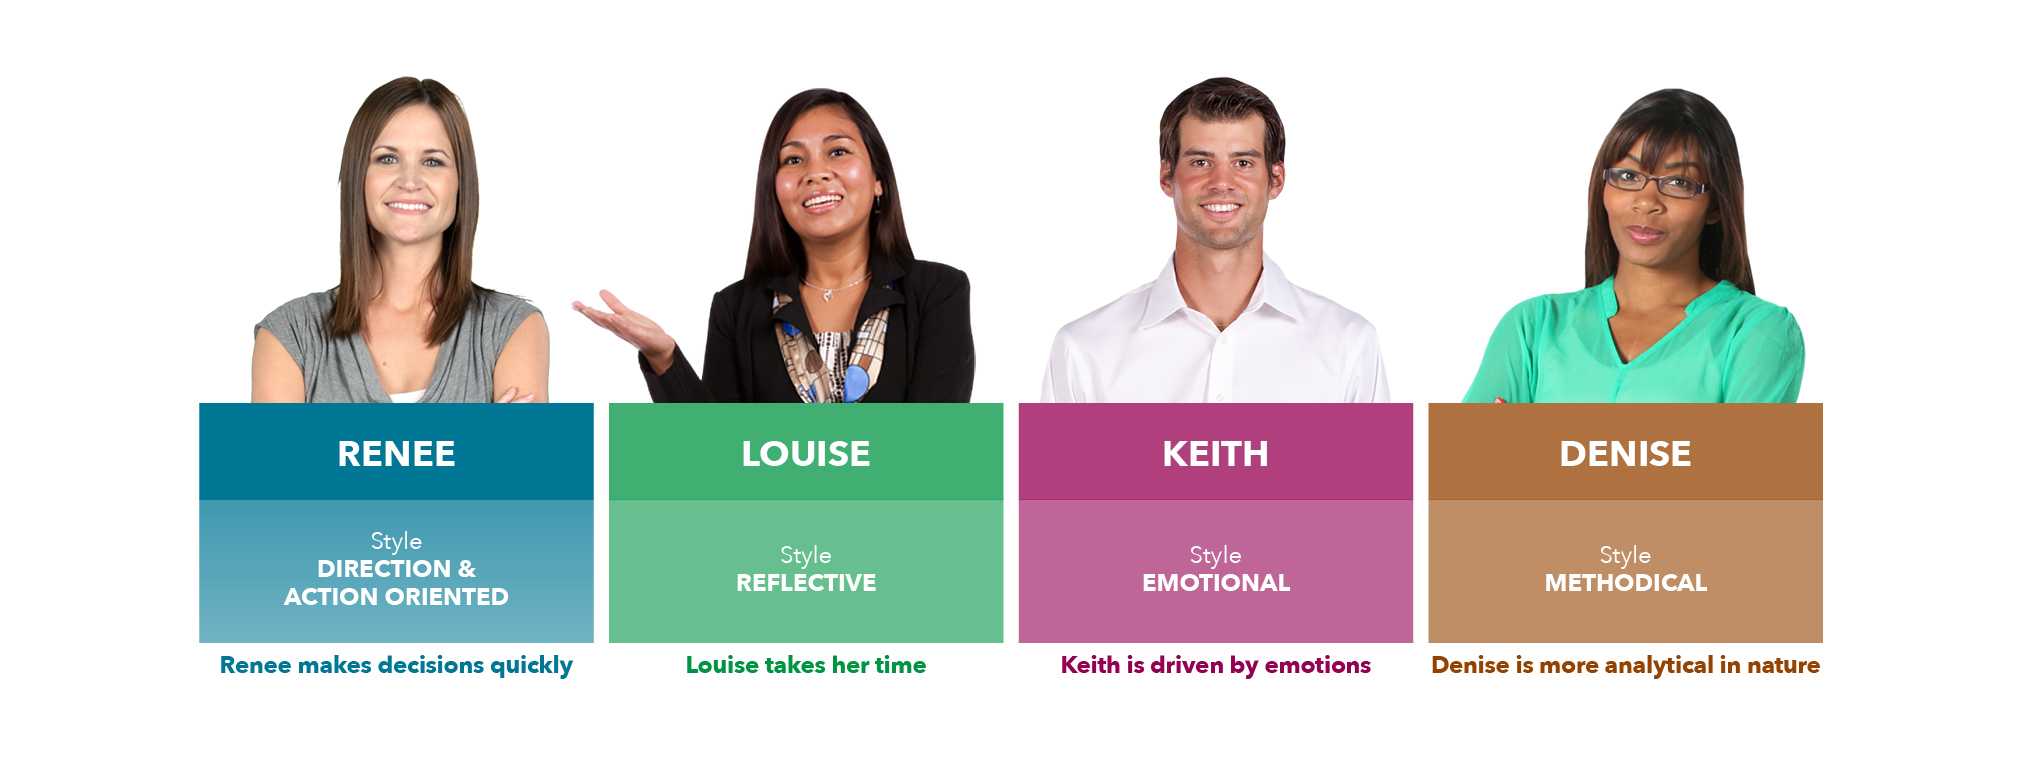 Personality Styles Example